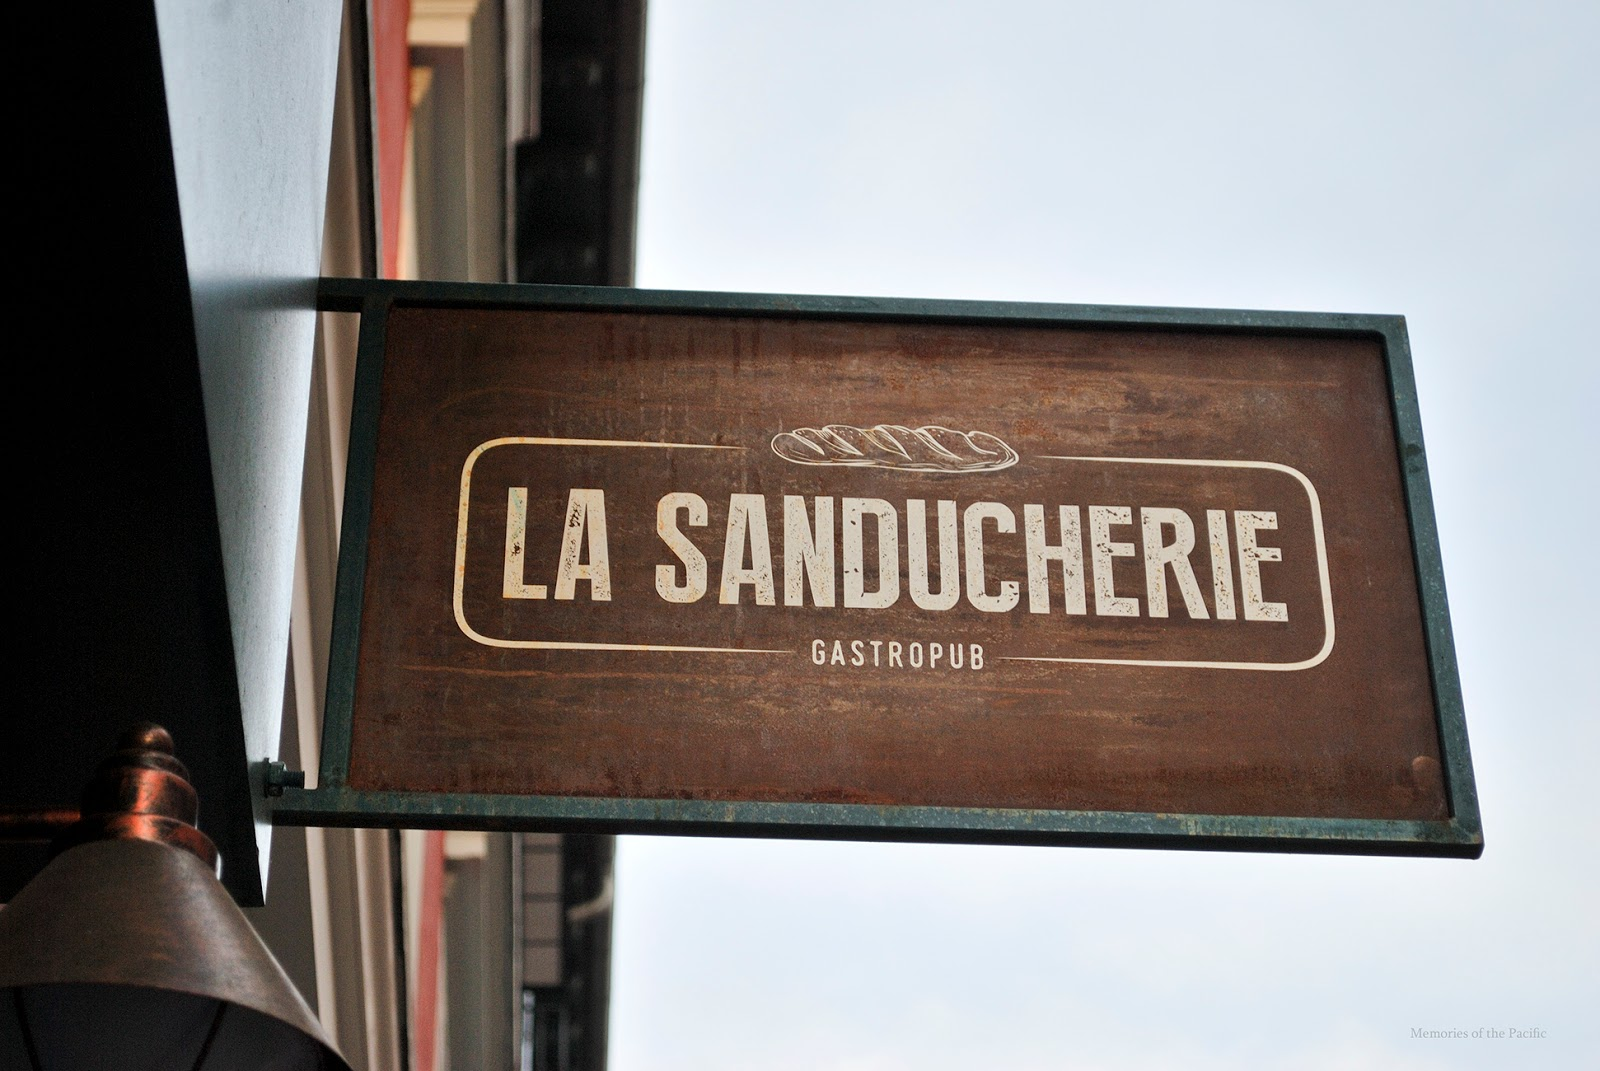 Best Sandwiches in Madrid: La Sanducherie